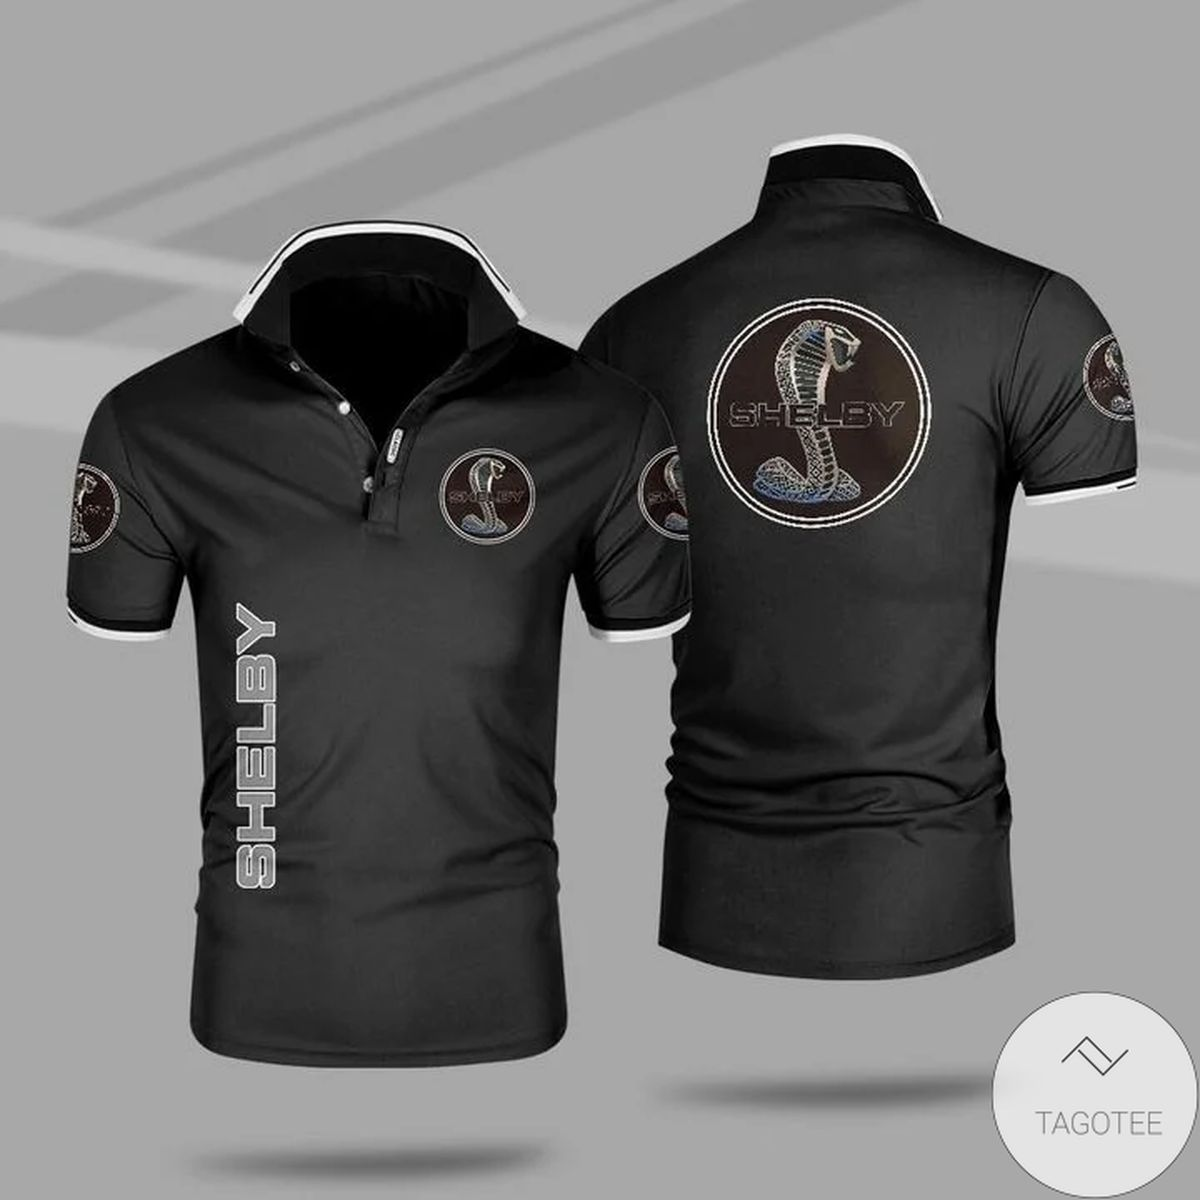 Ford Shelby Polo Shirt